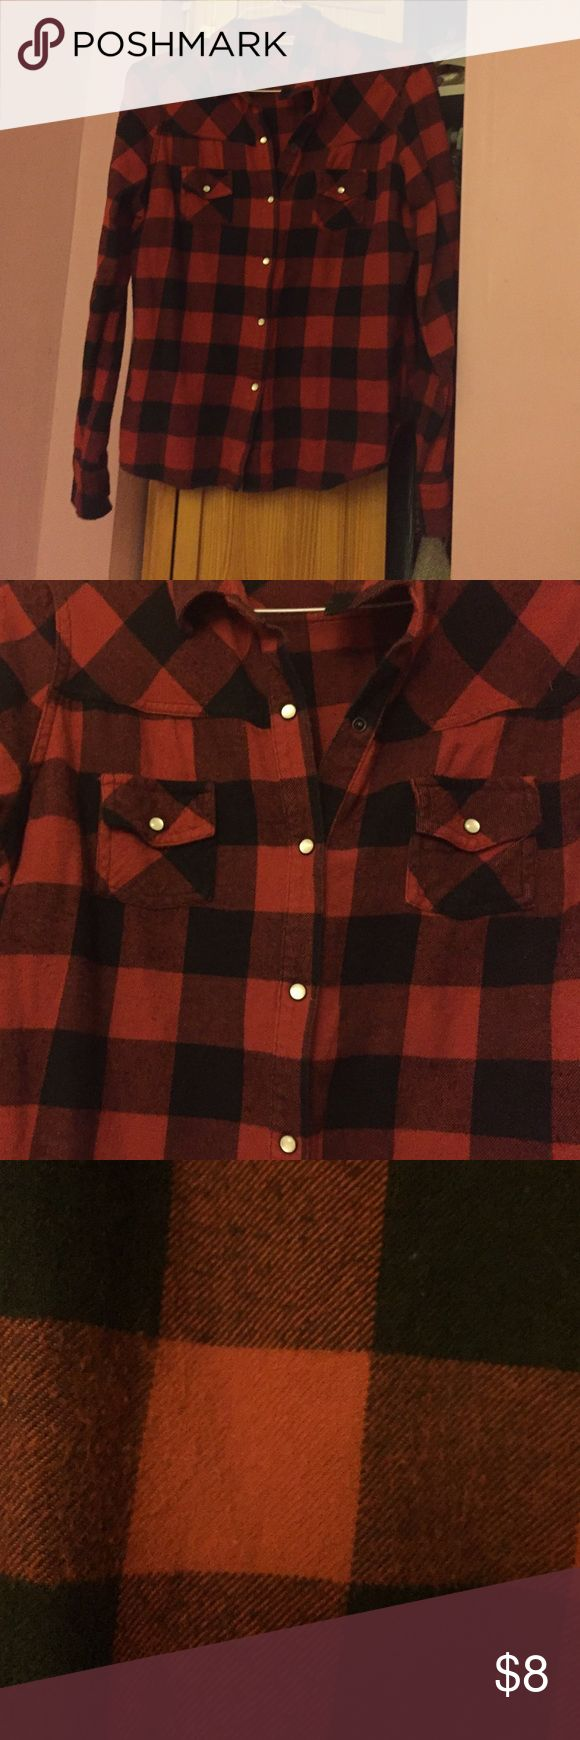 Red Plaid Shirt Red Plaid Shirt with buttons and pockets!            Worn a couple of times but it good condition! Mossimo Supply Co. Tops Button Down Shirts